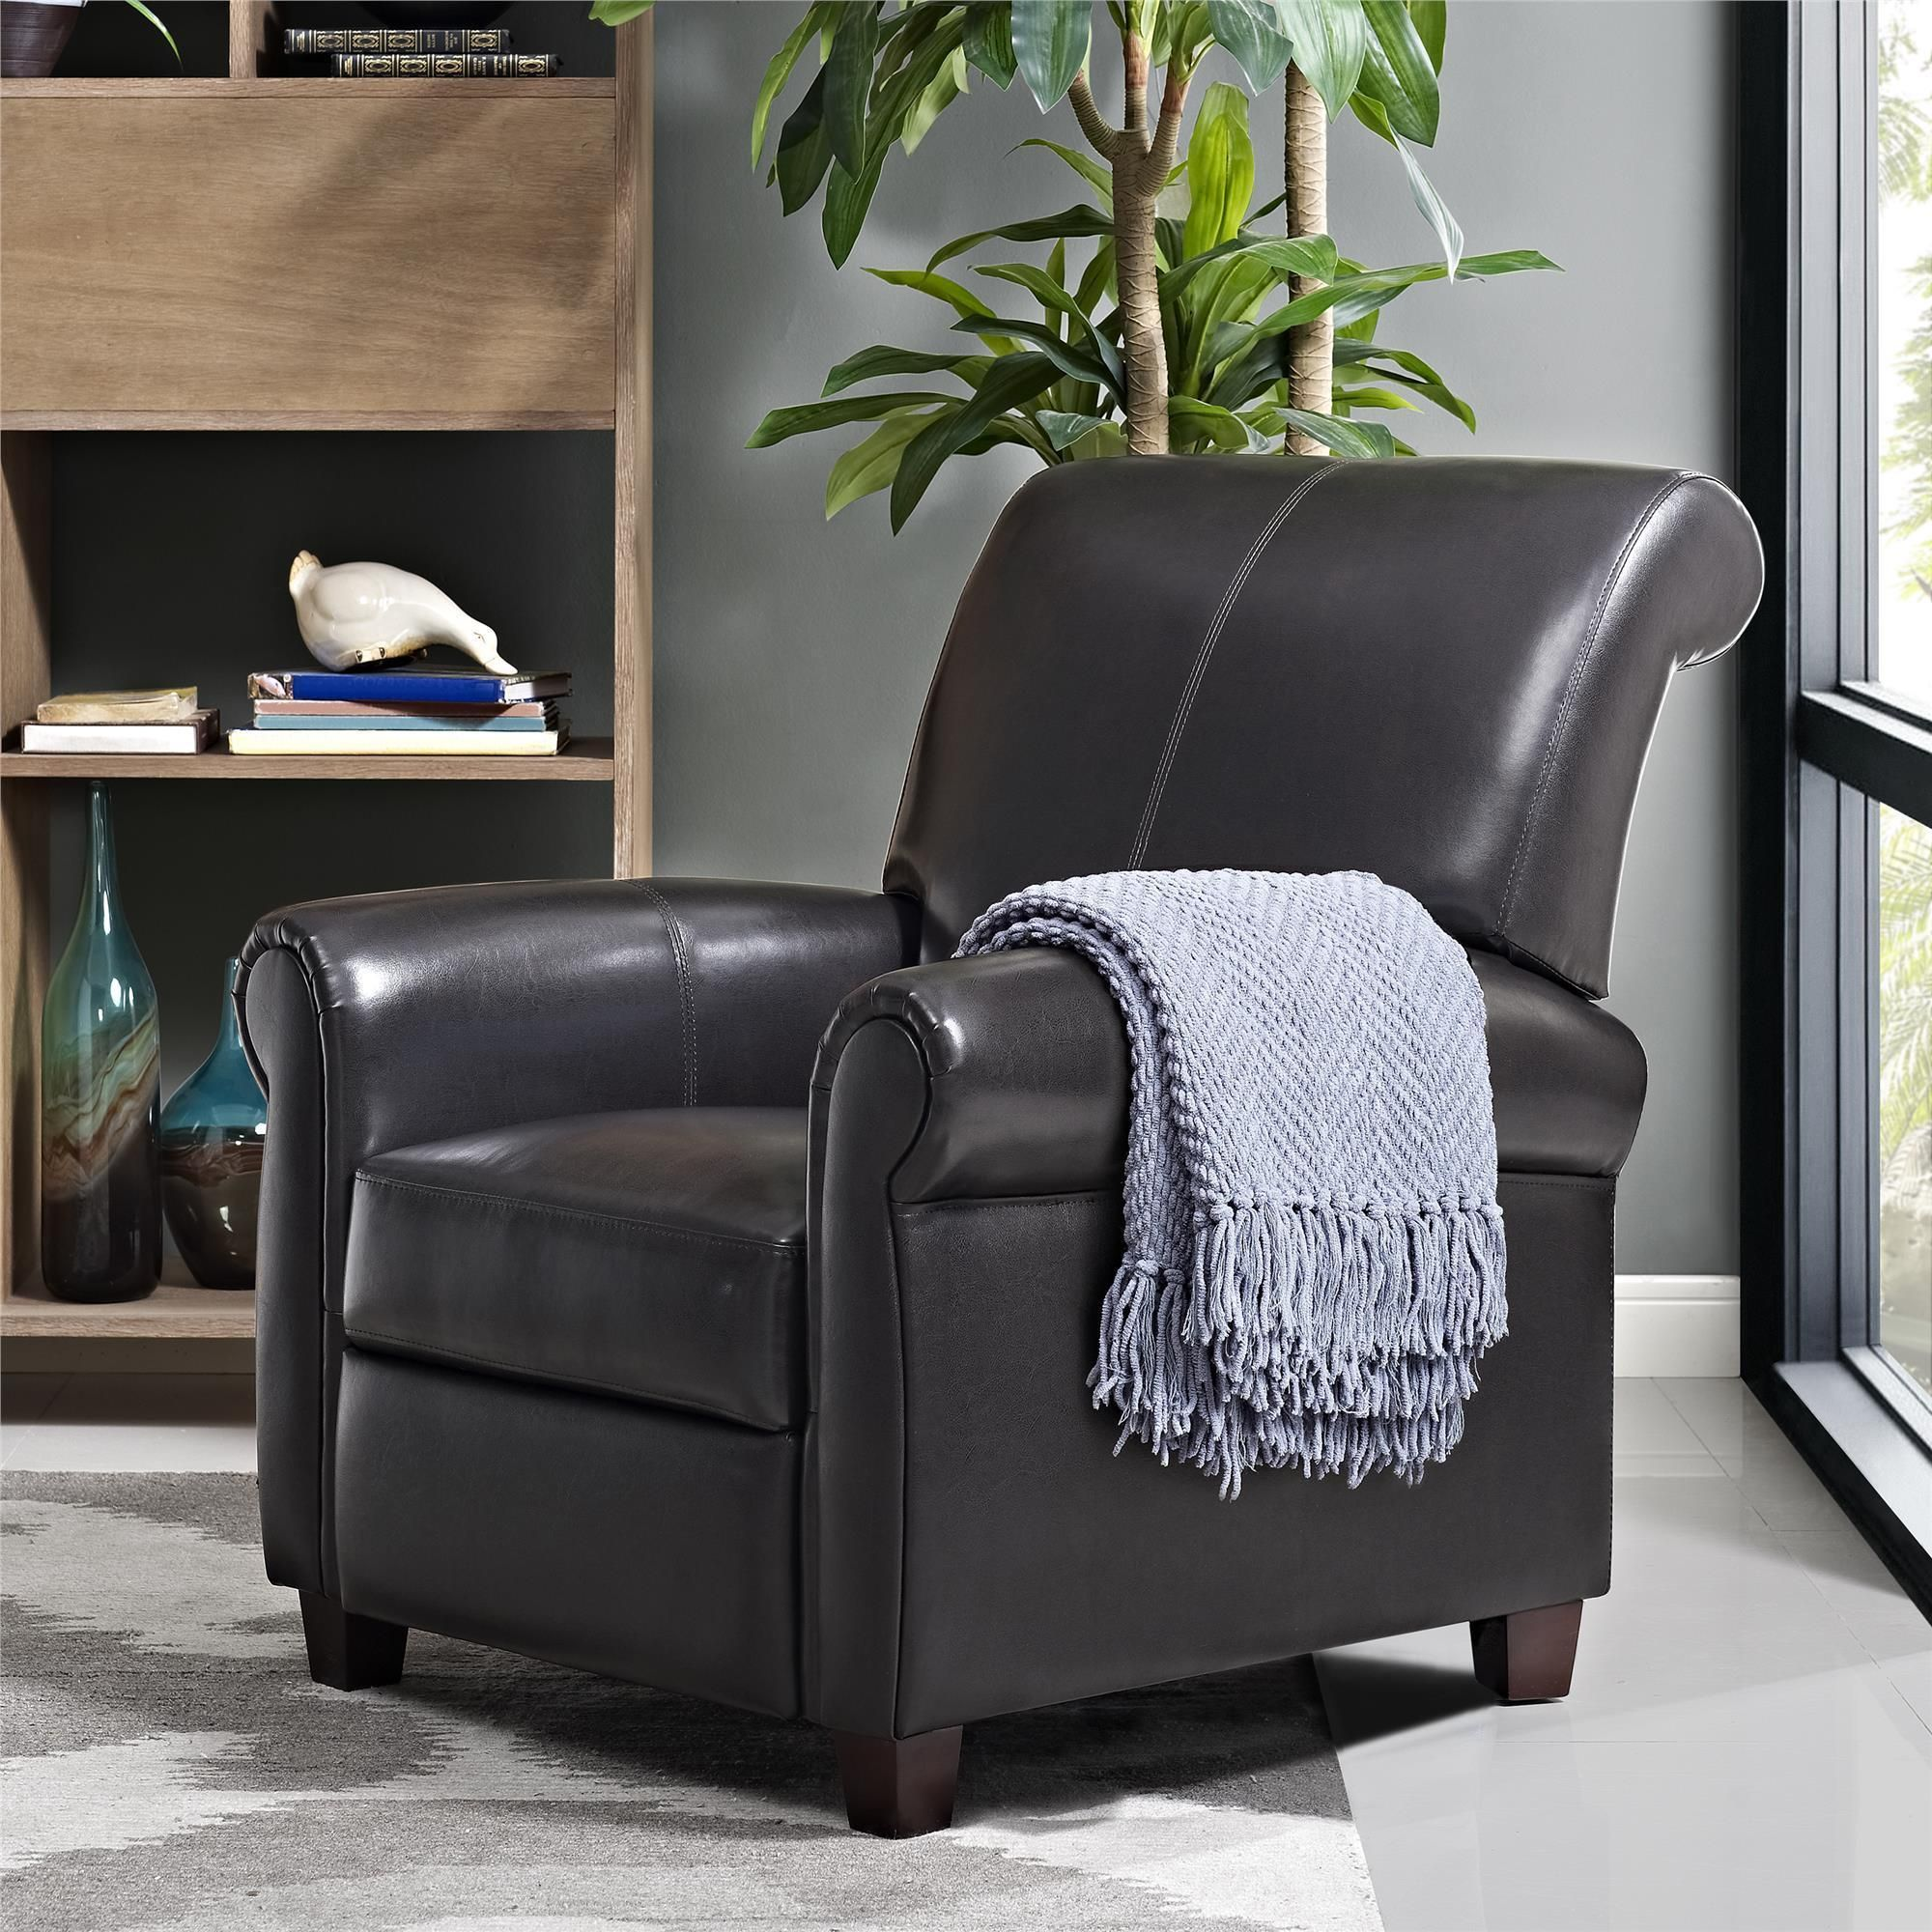 Awesome Dorel Living Savannah Pushback Recliner Recliner Brown Bralicious Painted Fabric Chair Ideas Braliciousco